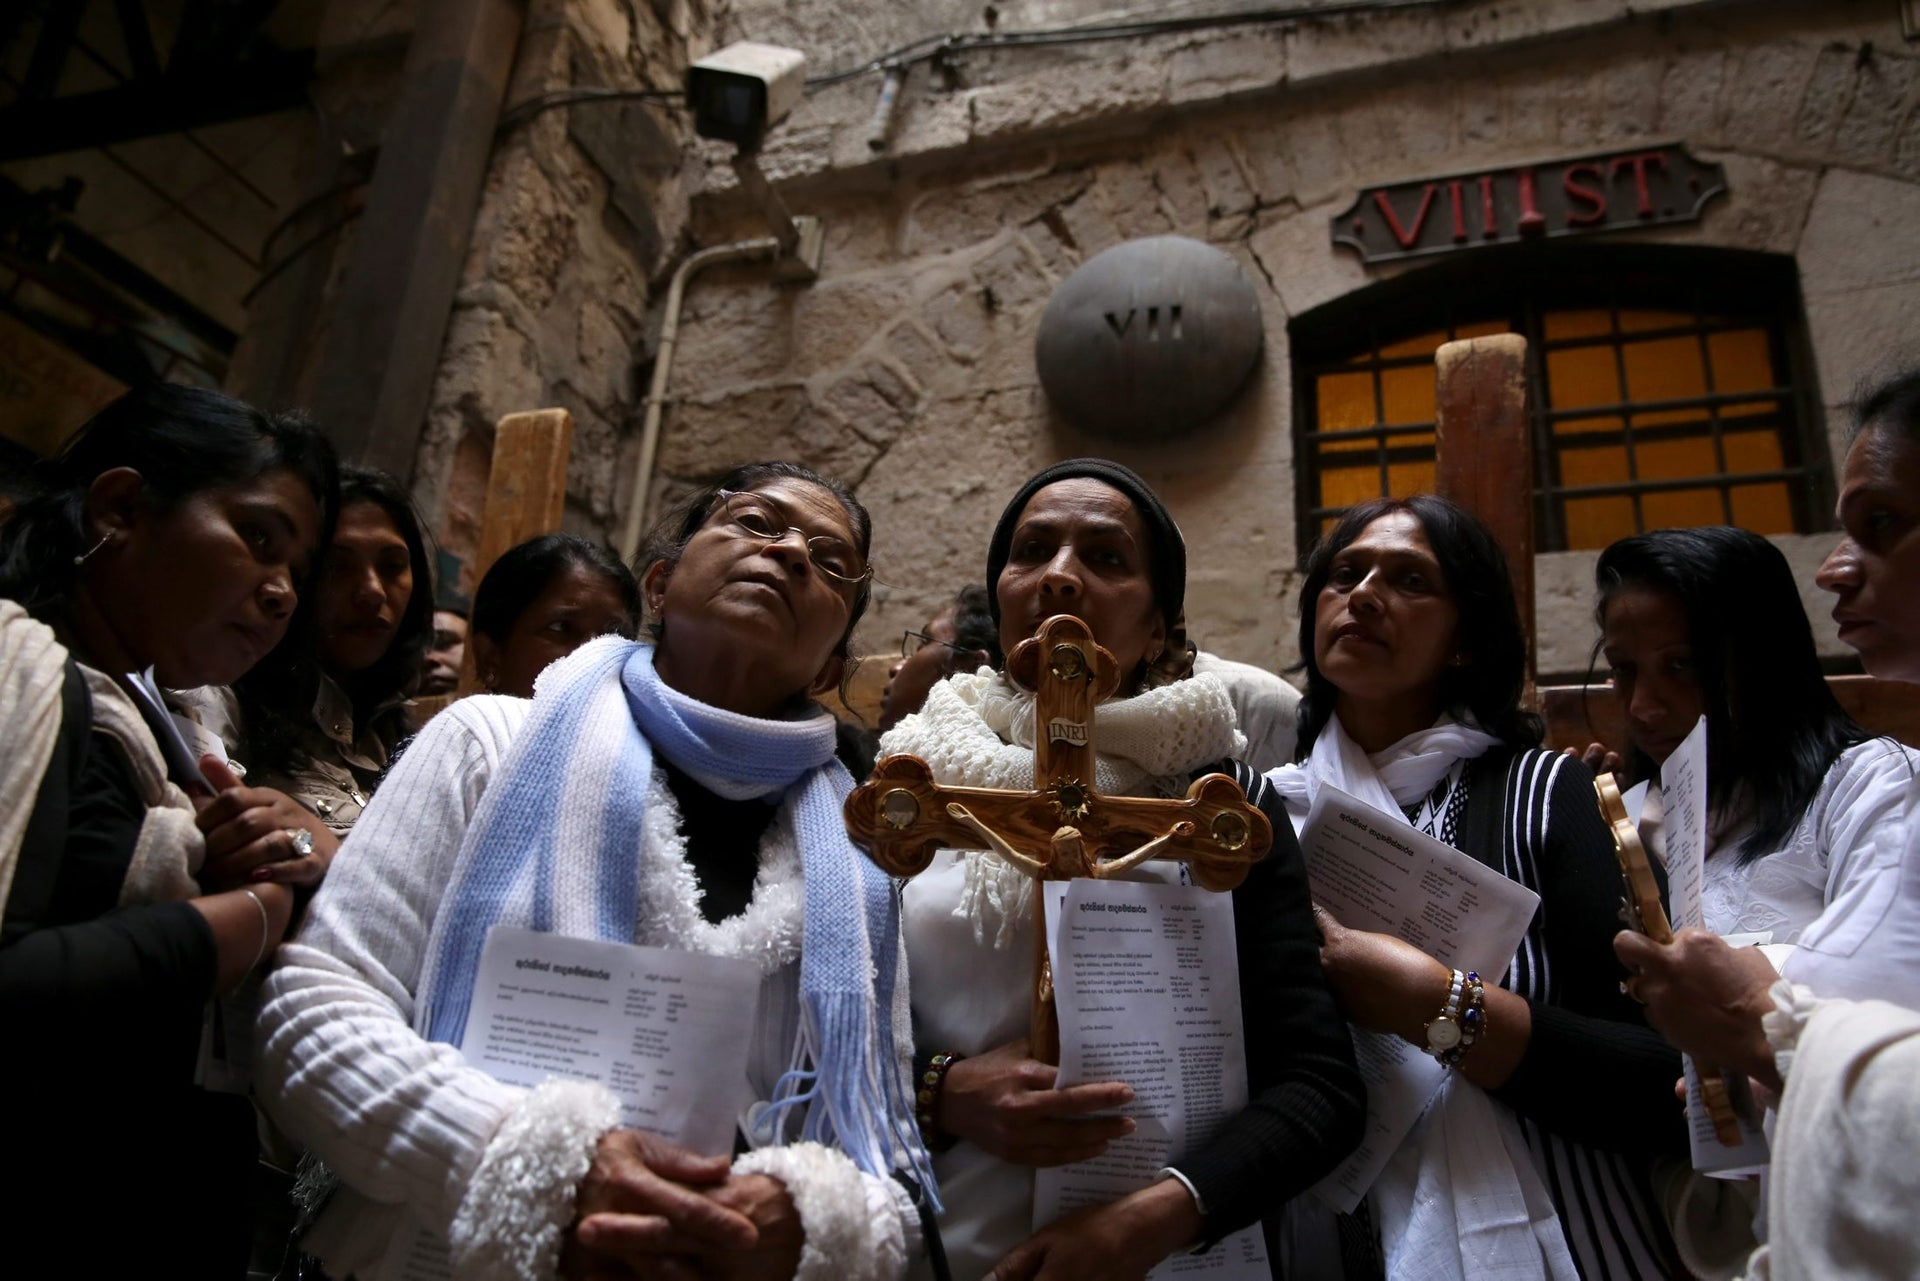 Catholic pilgrims from Sri Lanka carry a wooden cross along the Via Dolorosa (Way of Suffering) as they pray at the 7th station  in Jerusalem's Old City during the Good Friday procession on March 25, 2016.